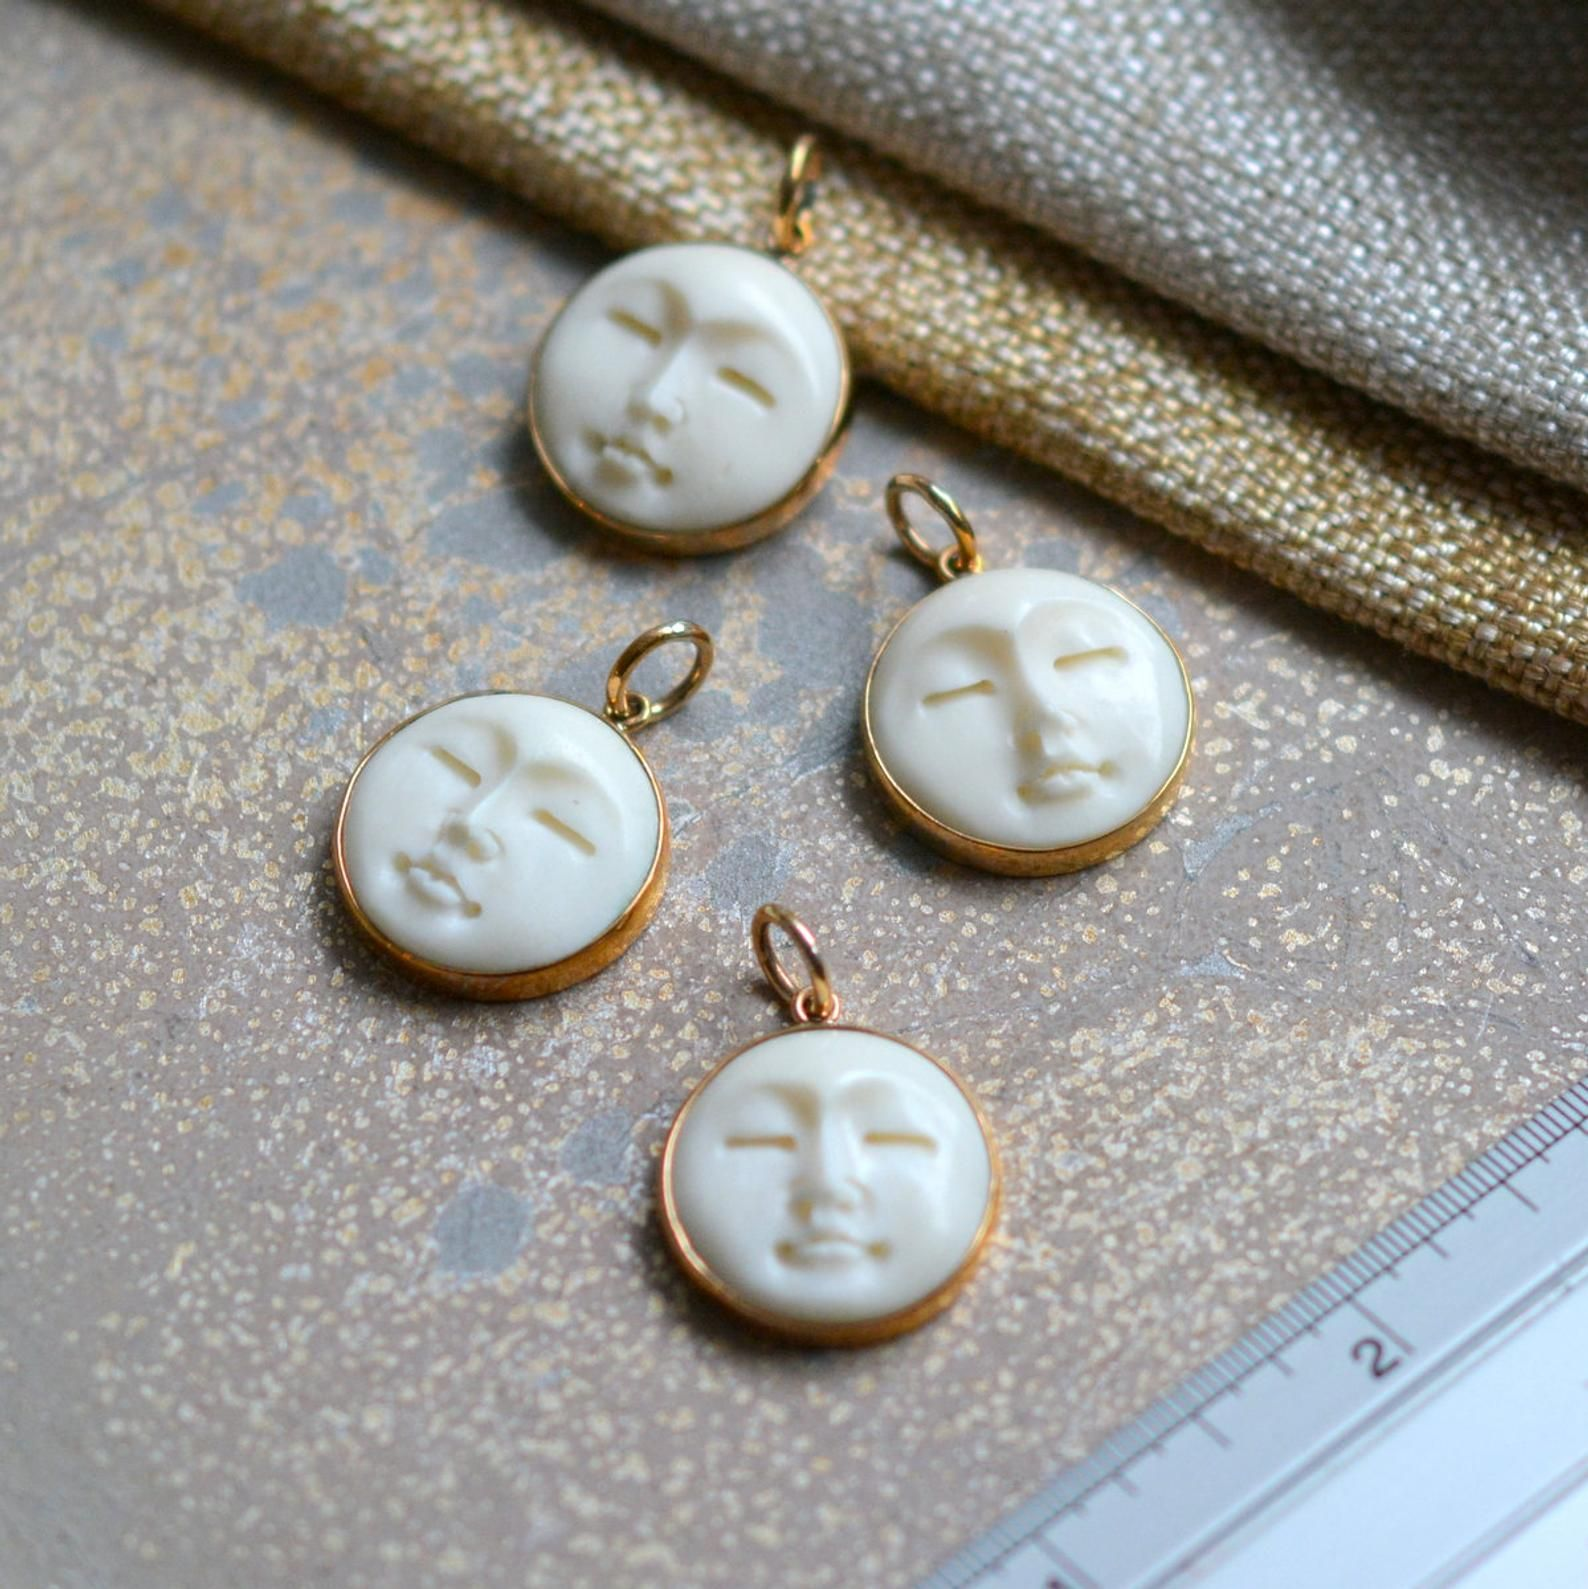 1 20mm Carved Bone Moon Face Bronze Pendant Bone Carving Set In Natural Bronze Sleeping Moon Choose Qty Bs17 1107a Bone Carving Moon Face Bronze Pendant